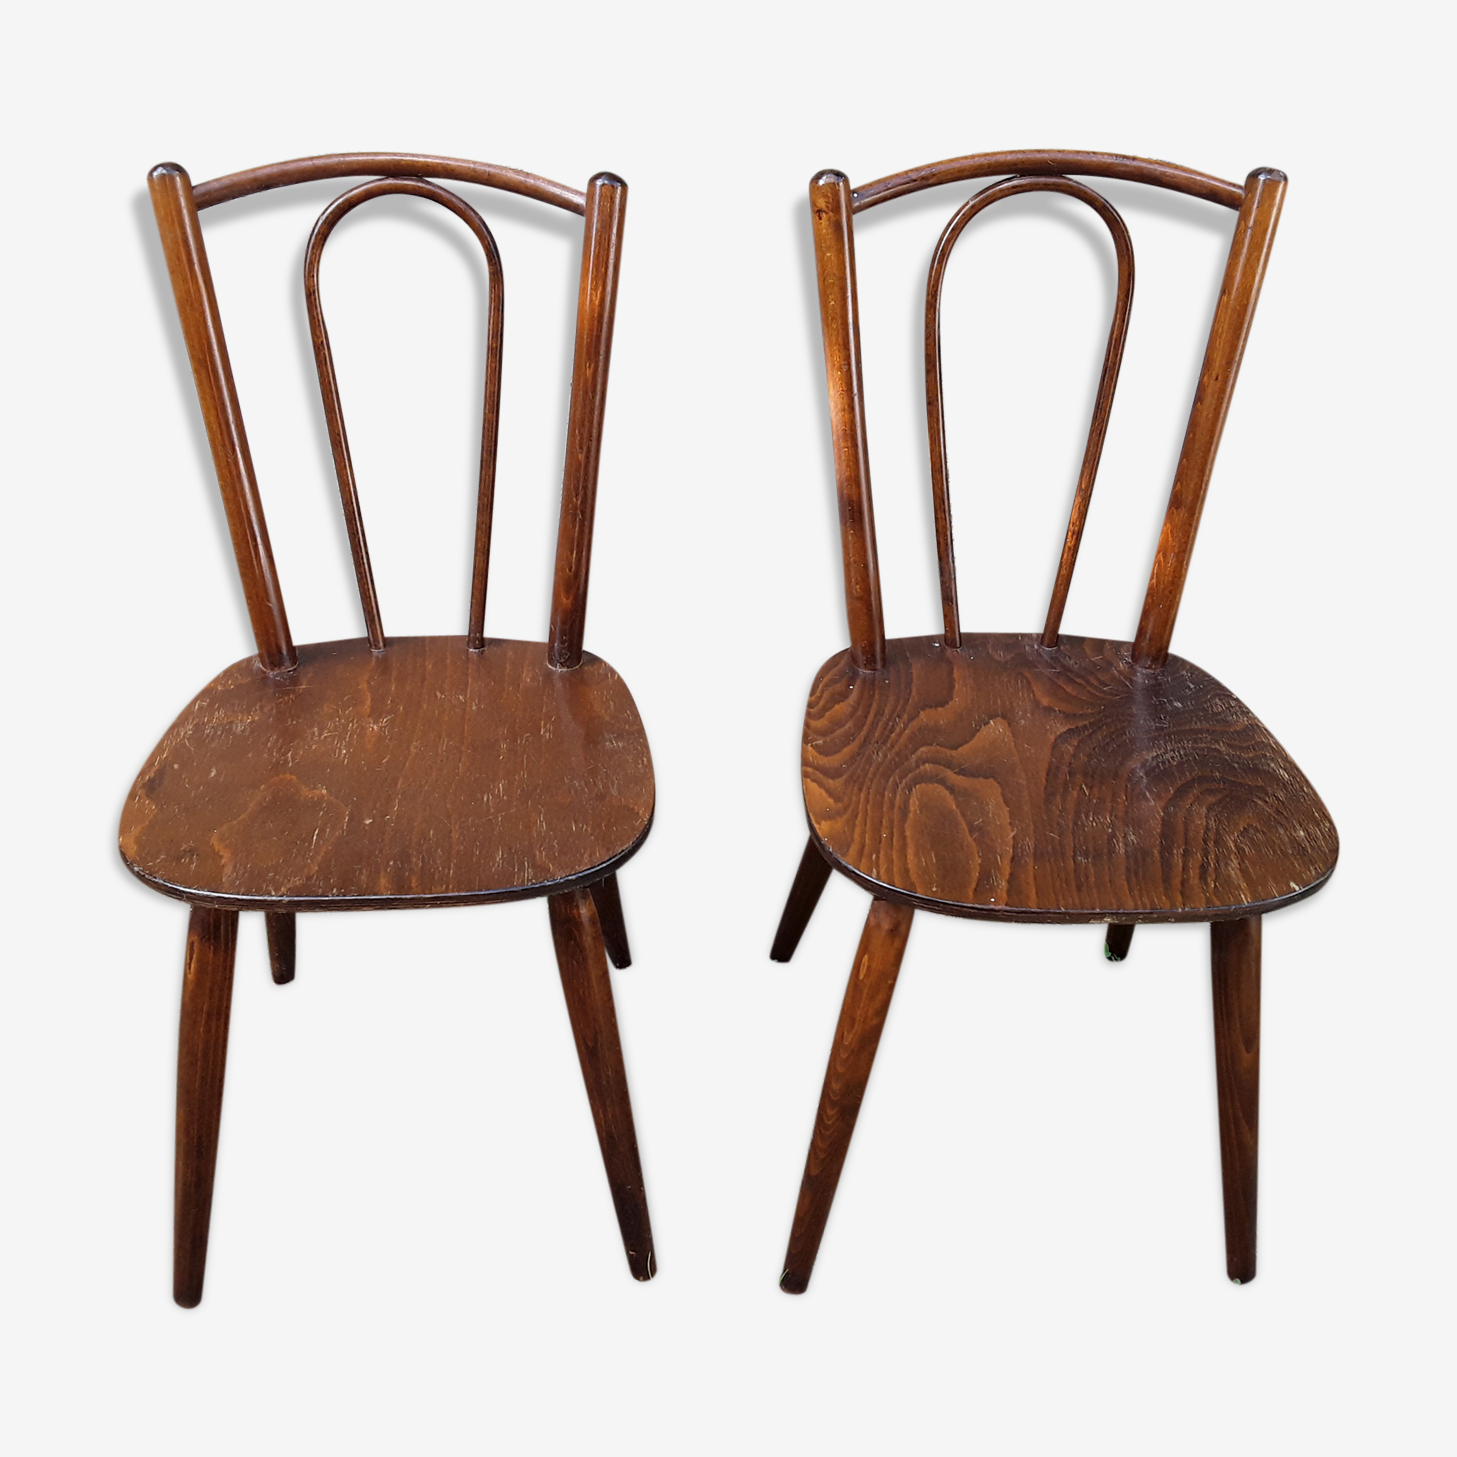 Two scandinavian style bistro chairs